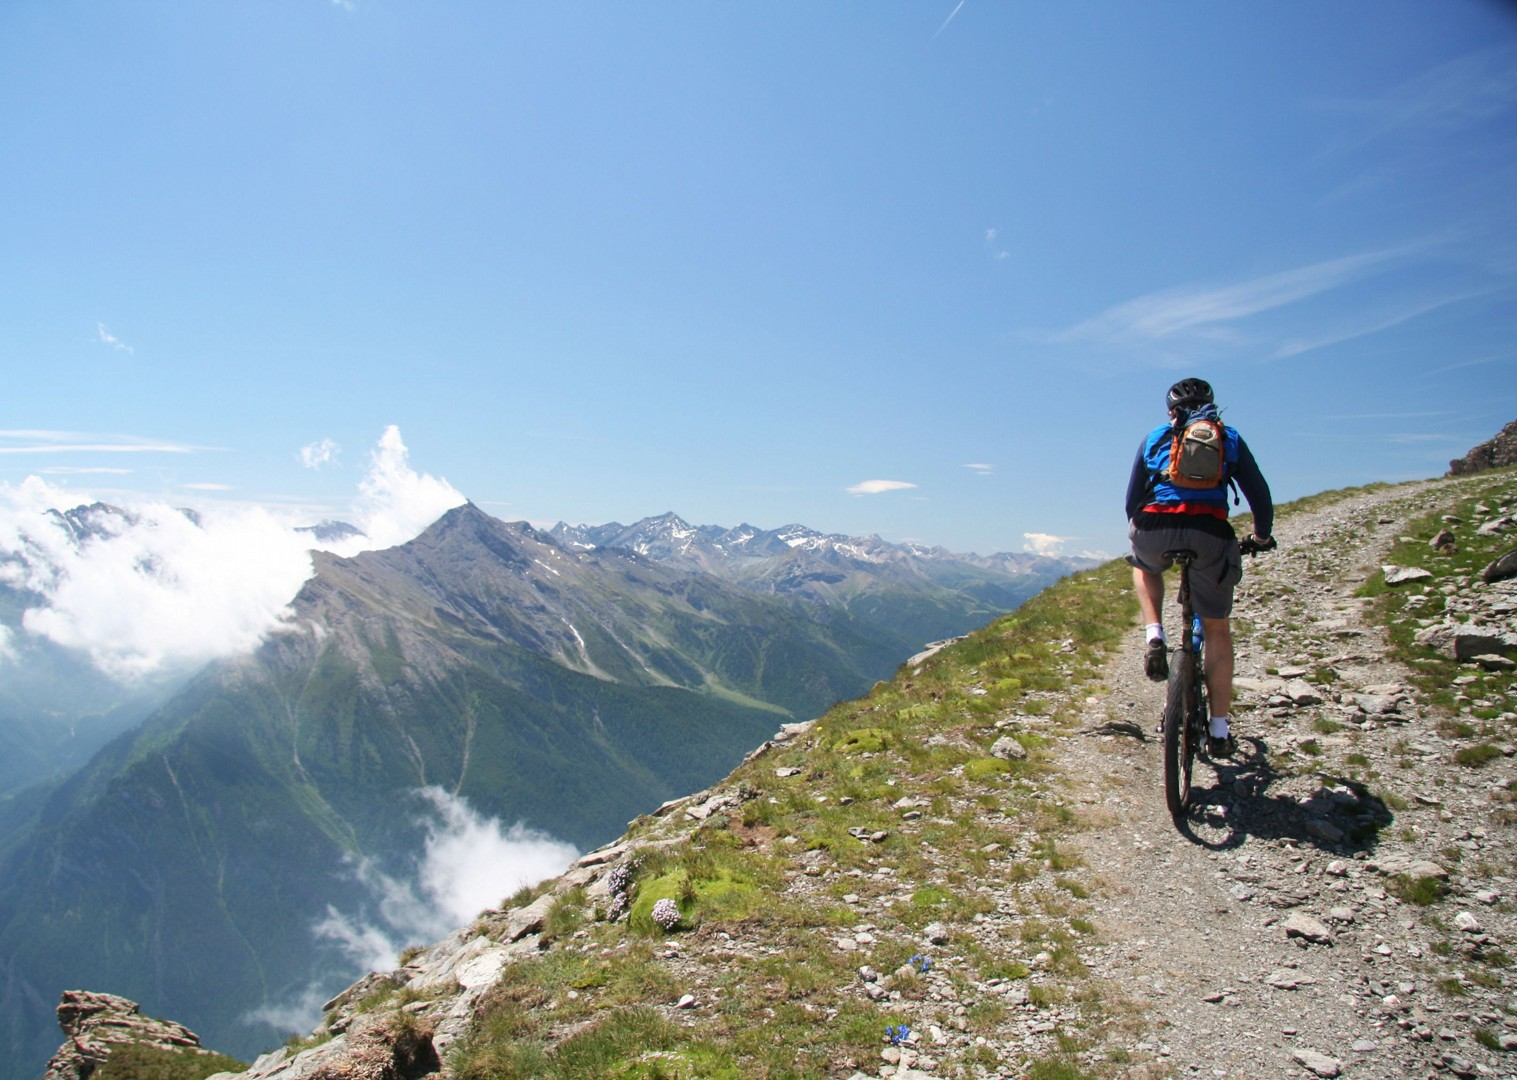 mountain-bike-holiday-in-italy-and-france-alpine-adventure.JPG - Italy and France - Alpine Adventure - Guided Mountain Bike Holiday - Mountain Biking